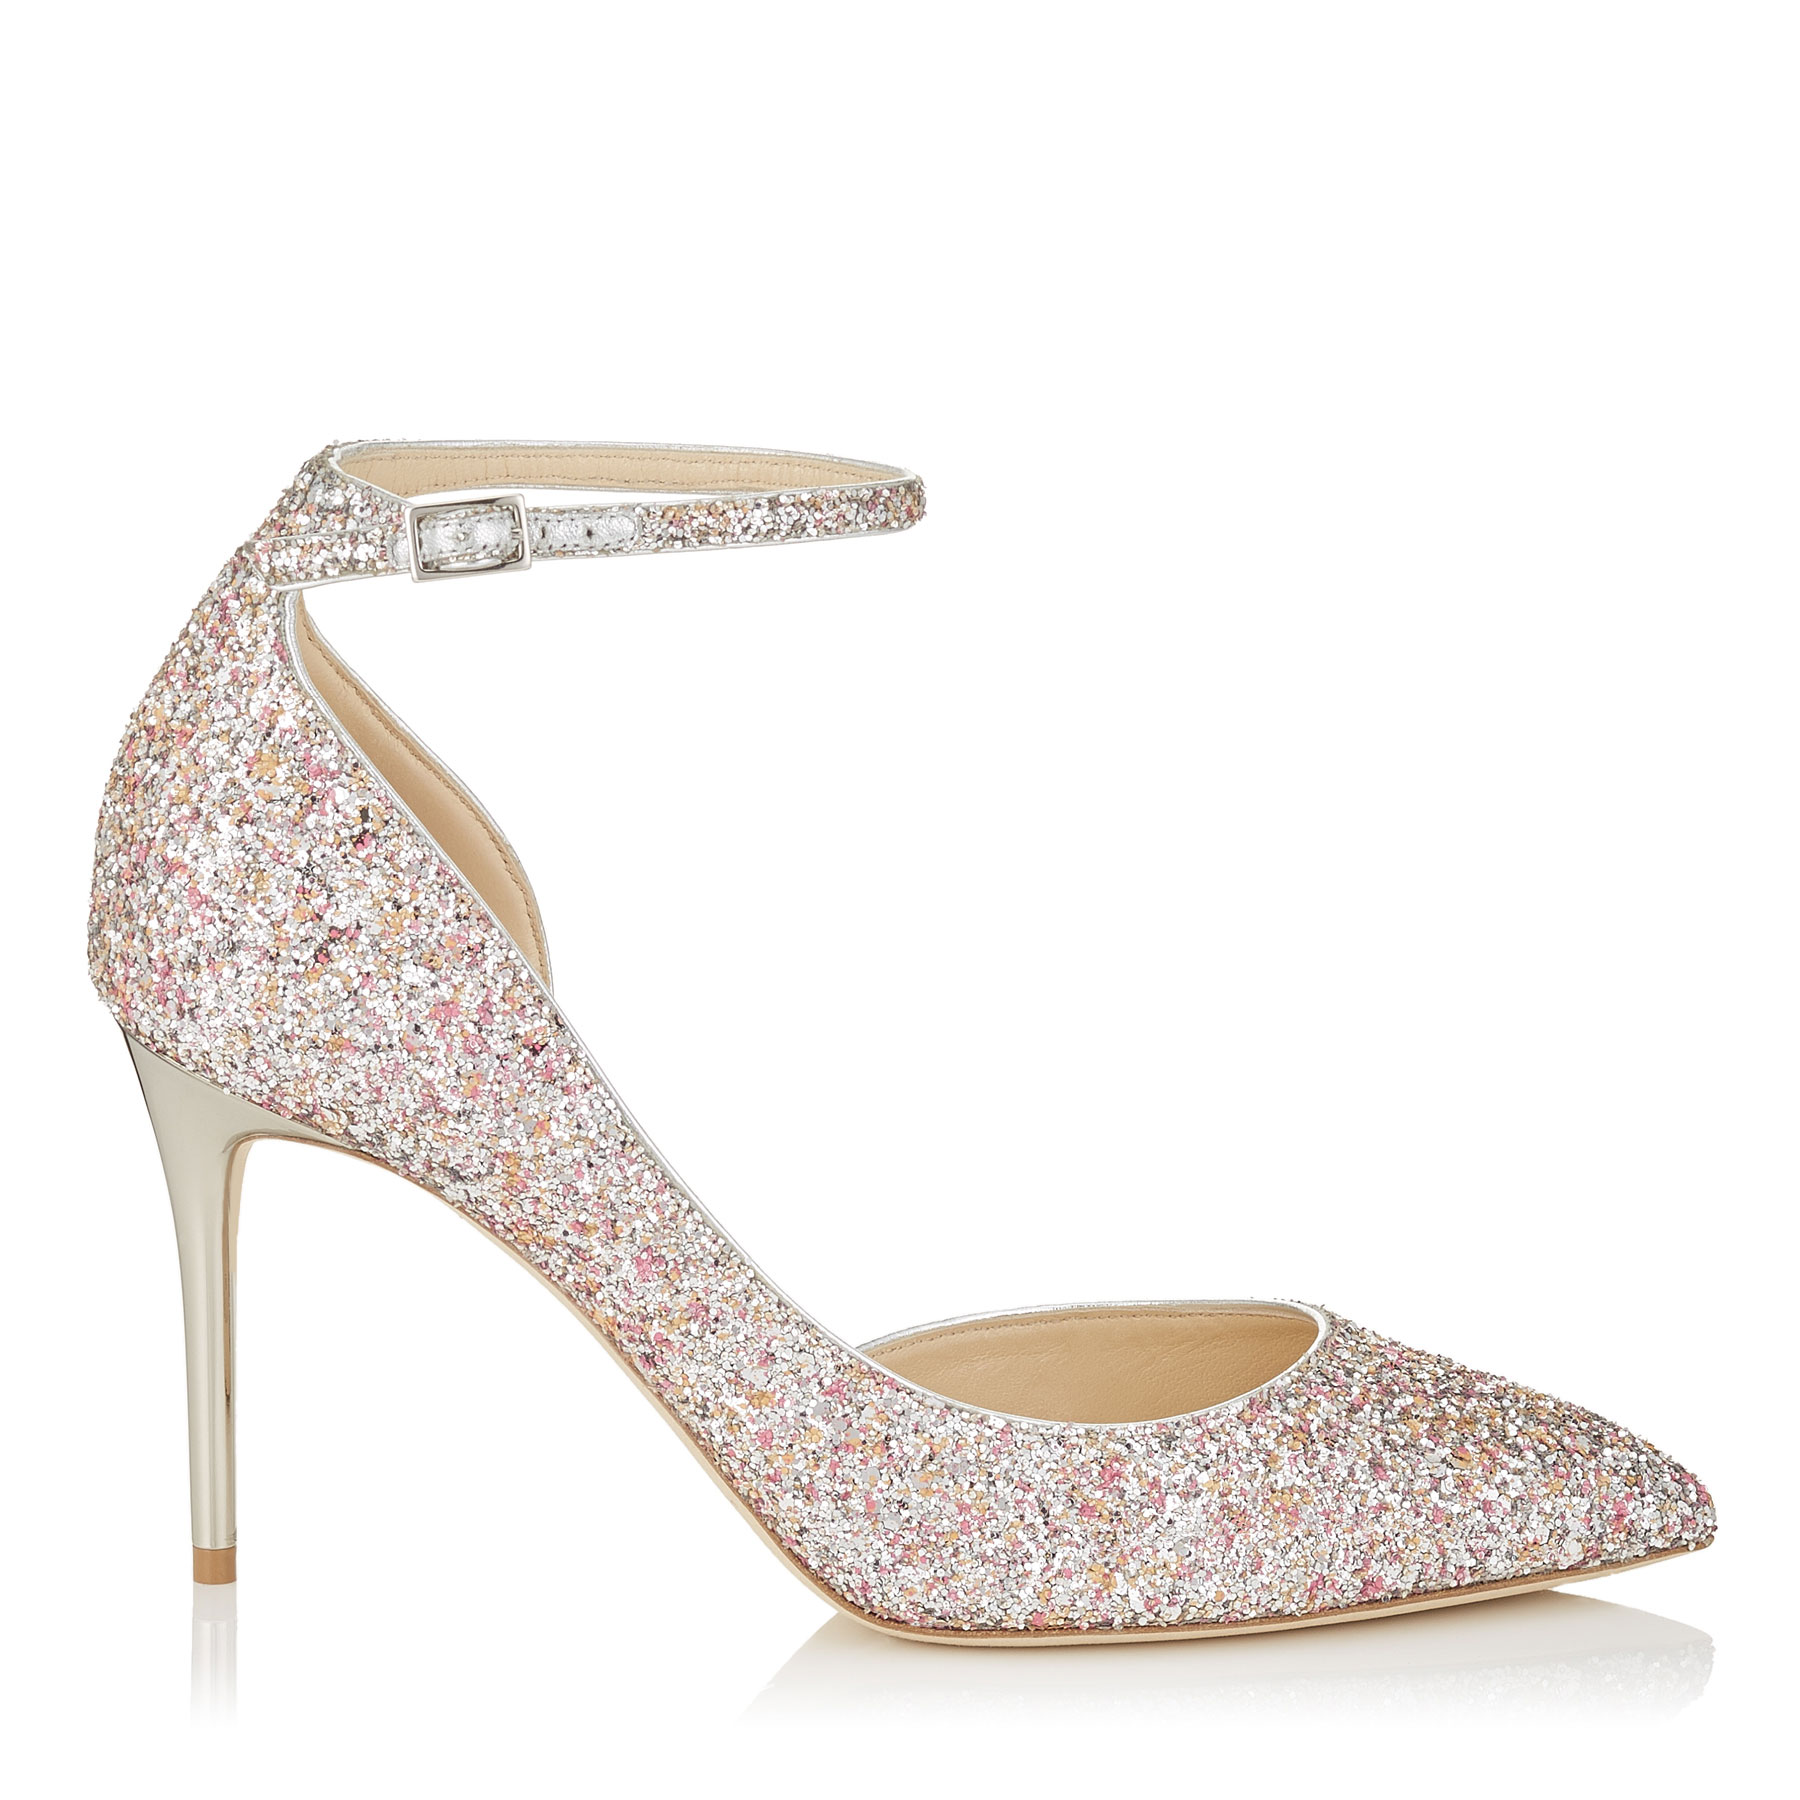 LUCY 85 Camellia Mix Speckled Glitter Pointy Toe Pumps